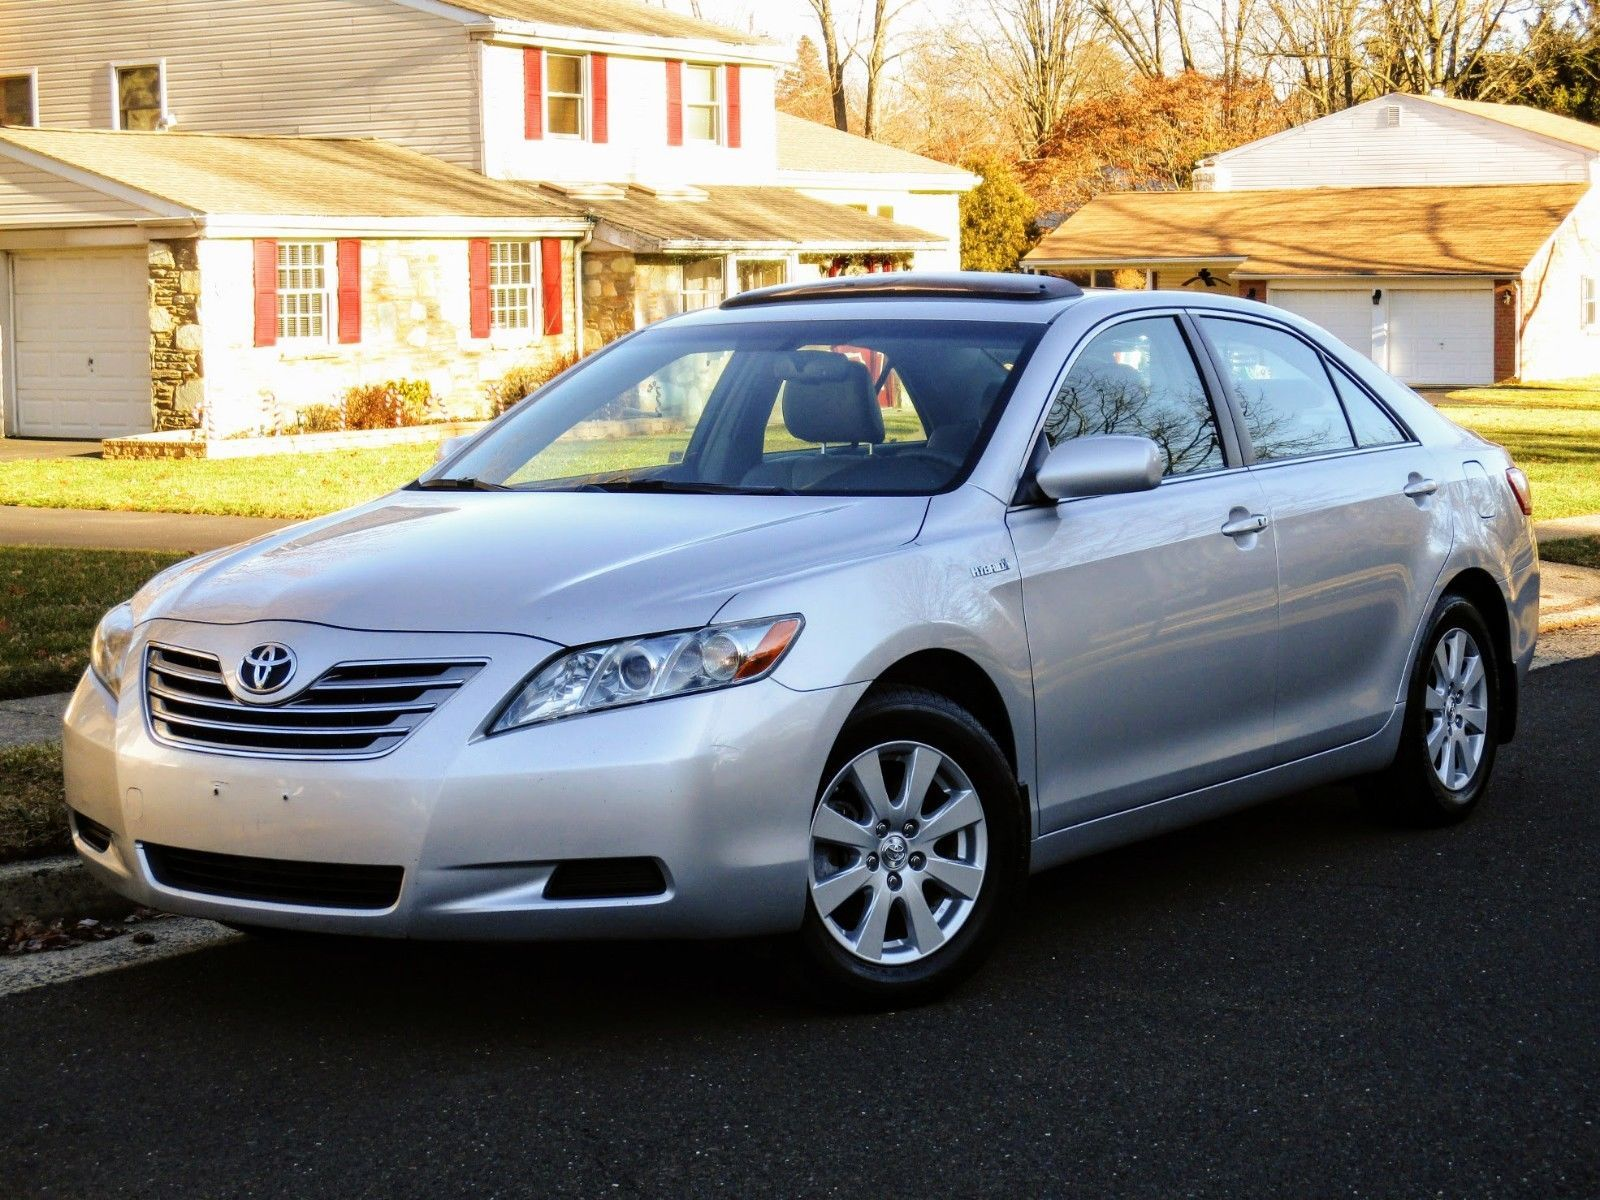 Superb Nice Awesome 2009 Toyota Camry Hybrid NO RESERVE! CLEAN CARFAX! 34 MPG!  LEATHER! NAVIGATION! BLUETOOTH! SMART KEY! SDN 2017/2018